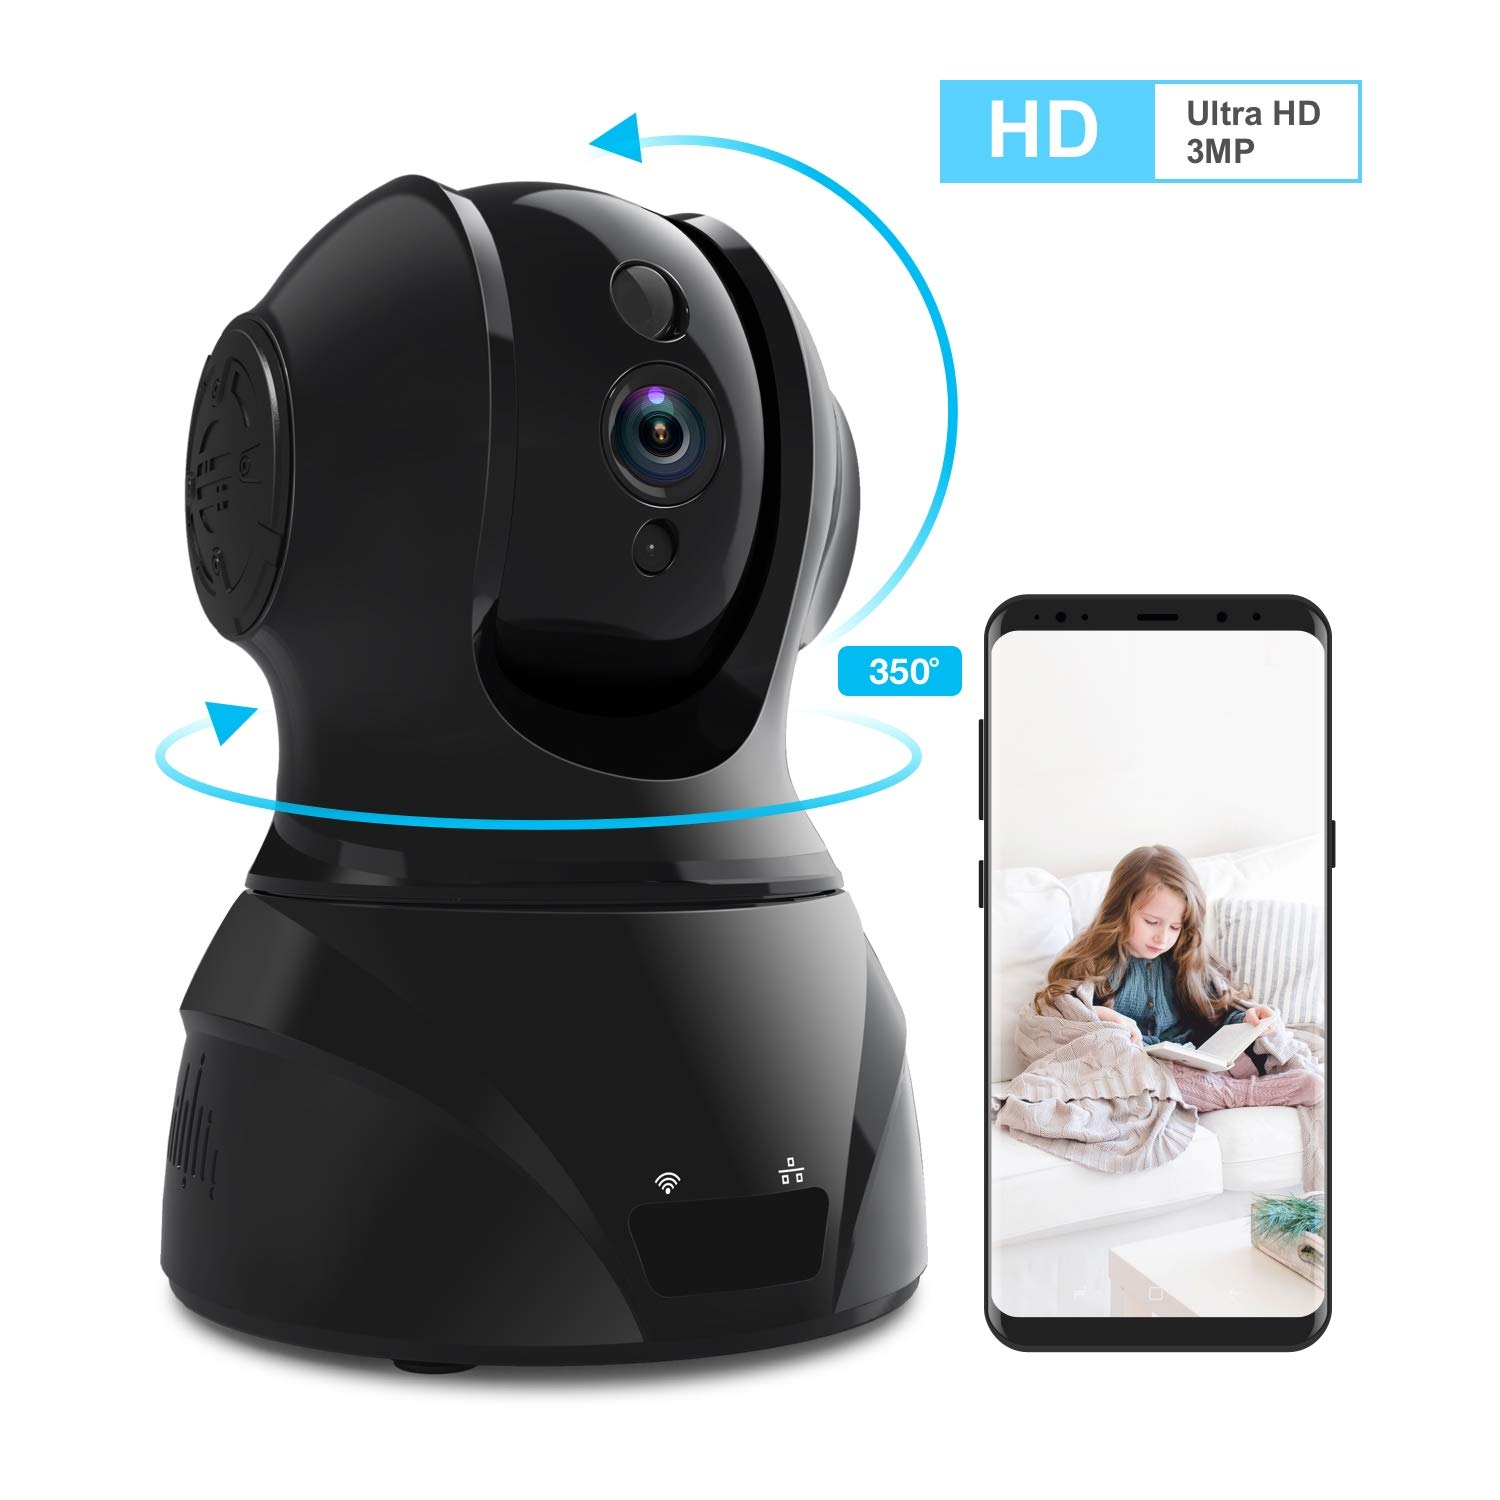 Home Security Camera Wi-Fi IP Camera, Wonbo Wireless HD 3MP Pan/Tilt/Zoom 2.4G with 2-Way Audio, Motion Detection, Night Vision, Auto-Cruise, Remote Monitor for Baby Pet Elder (Android/iOS) by homectrl